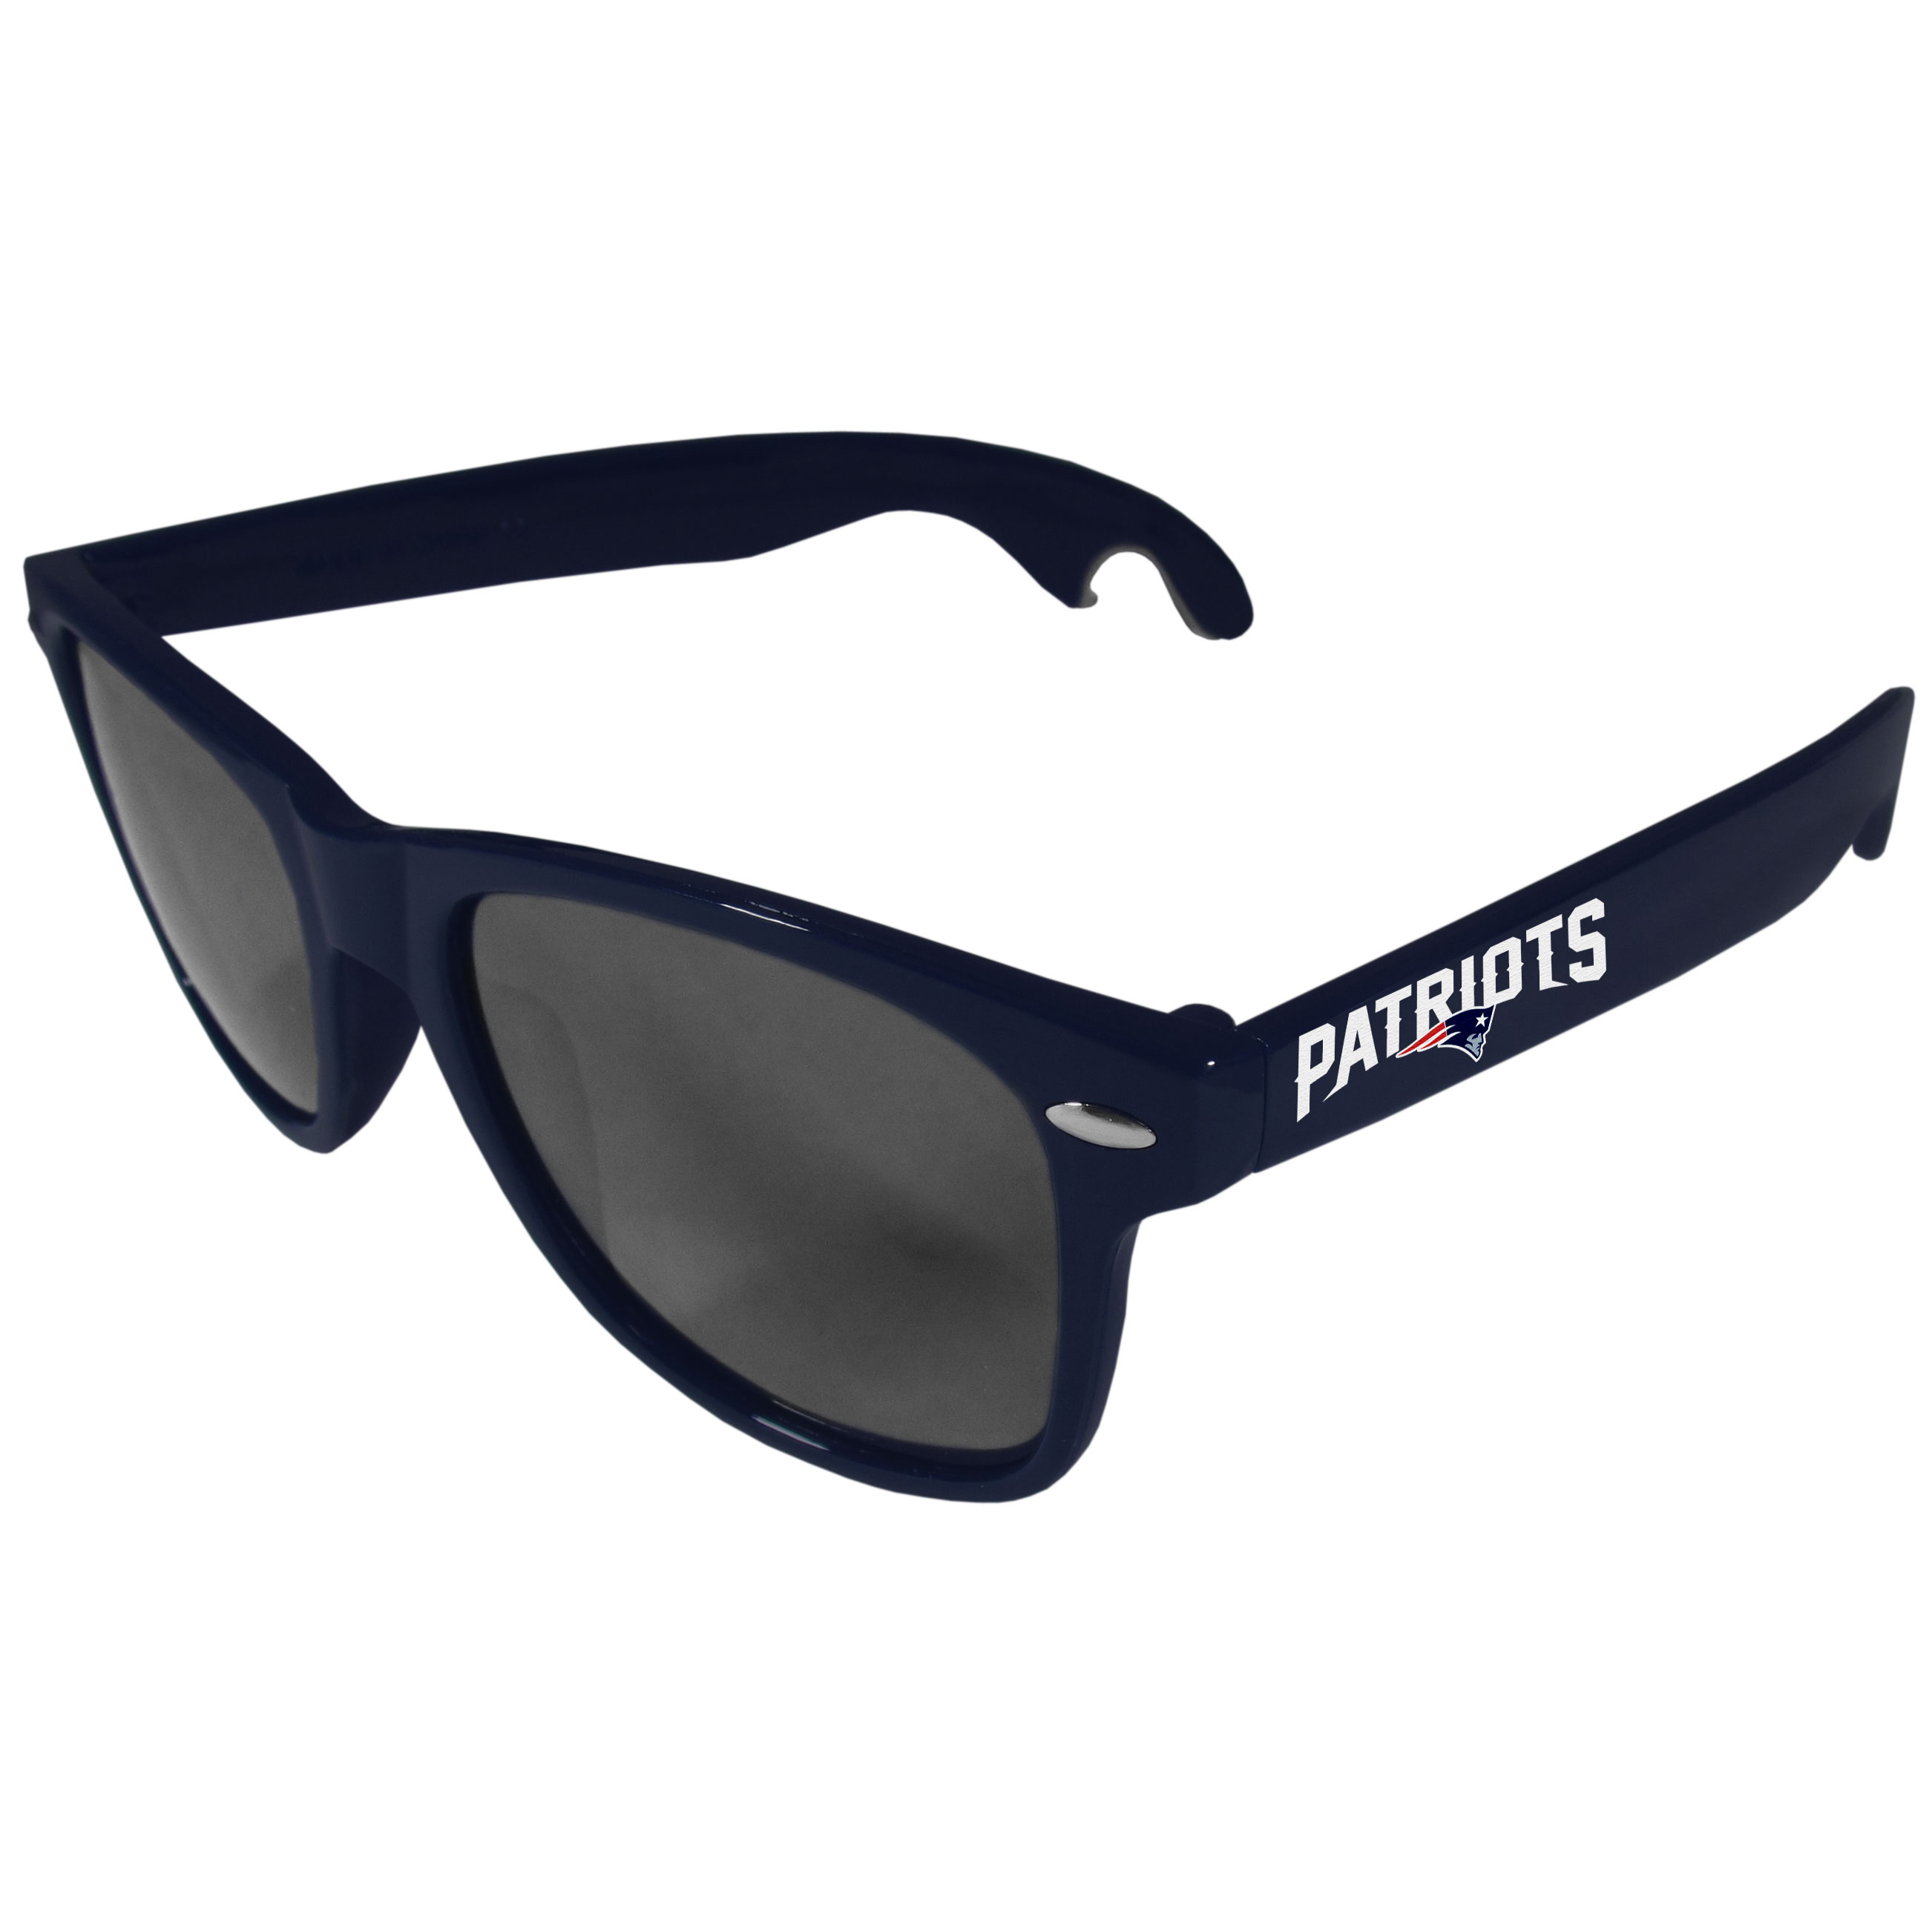 New England Patriots Beachfarer Bottle Opener Sunglasses, Dark Blue - Seriously, these sunglasses open bottles! Keep the party going with these amazing New England Patriots bottle opener sunglasses. The stylish retro frames feature team designs on the arms and functional bottle openers on the end of the arms. Whether you are at the beach or having a backyard BBQ on game day, these shades will keep your eyes protected with 100% UVA/UVB protection and keep you hydrated with the handy bottle opener arms.